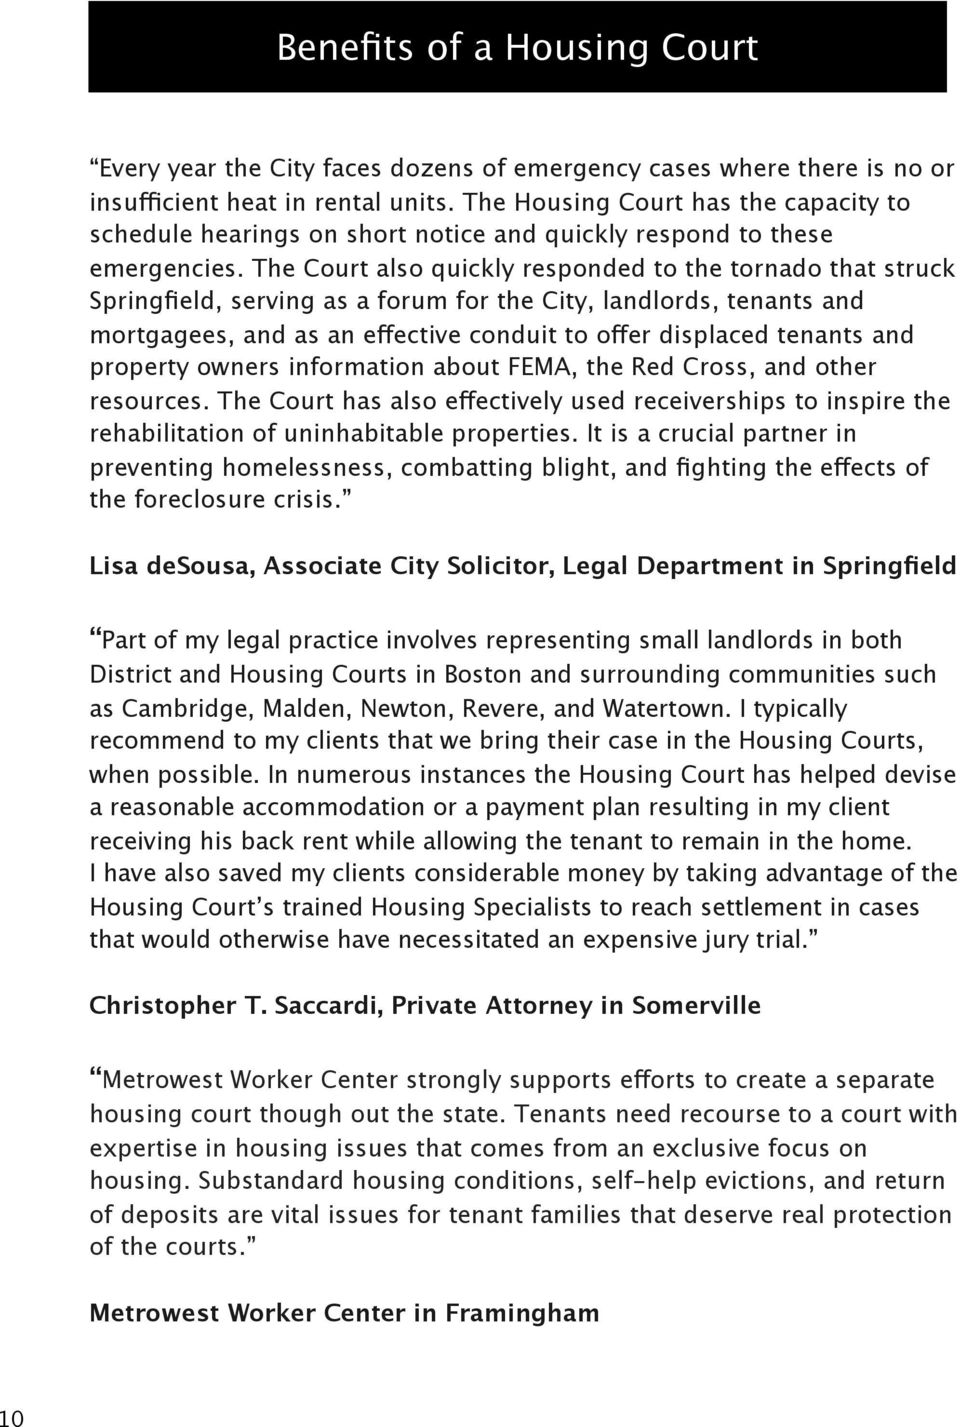 The Court also quickly responded to the tornado that struck Springfield, serving as a forum for the City, landlords, tenants and mortgagees, and as an effective conduit to offer displaced tenants and